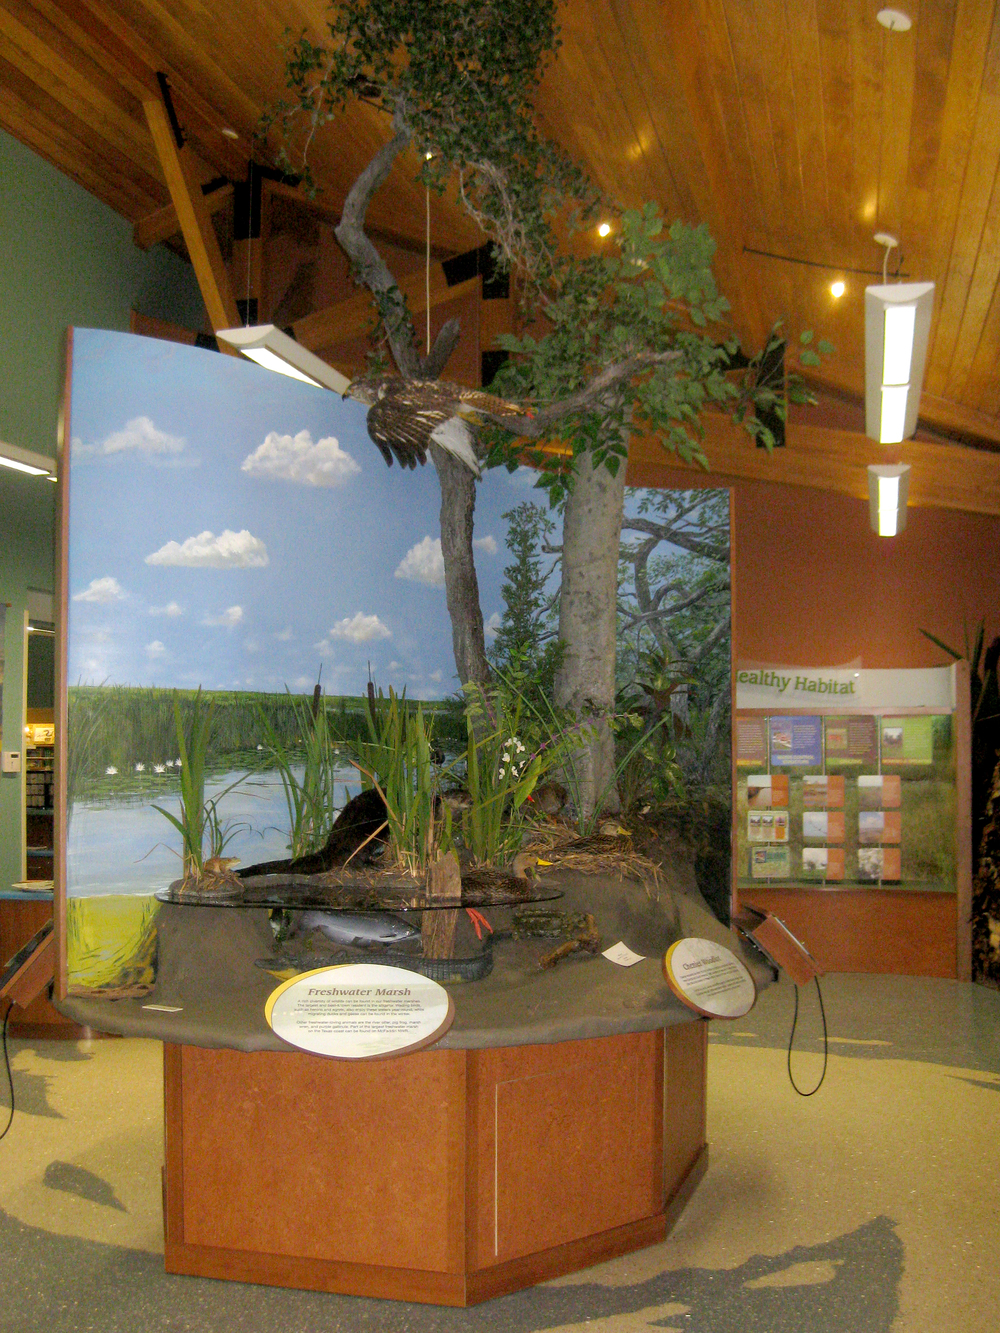 A central diorama introduces three distinct habitats and includes three hand-painted background murals. A series of interpretive panels leads visitors to the Alligator Incubator, a walk-in children's area filled with hands-on interactives.